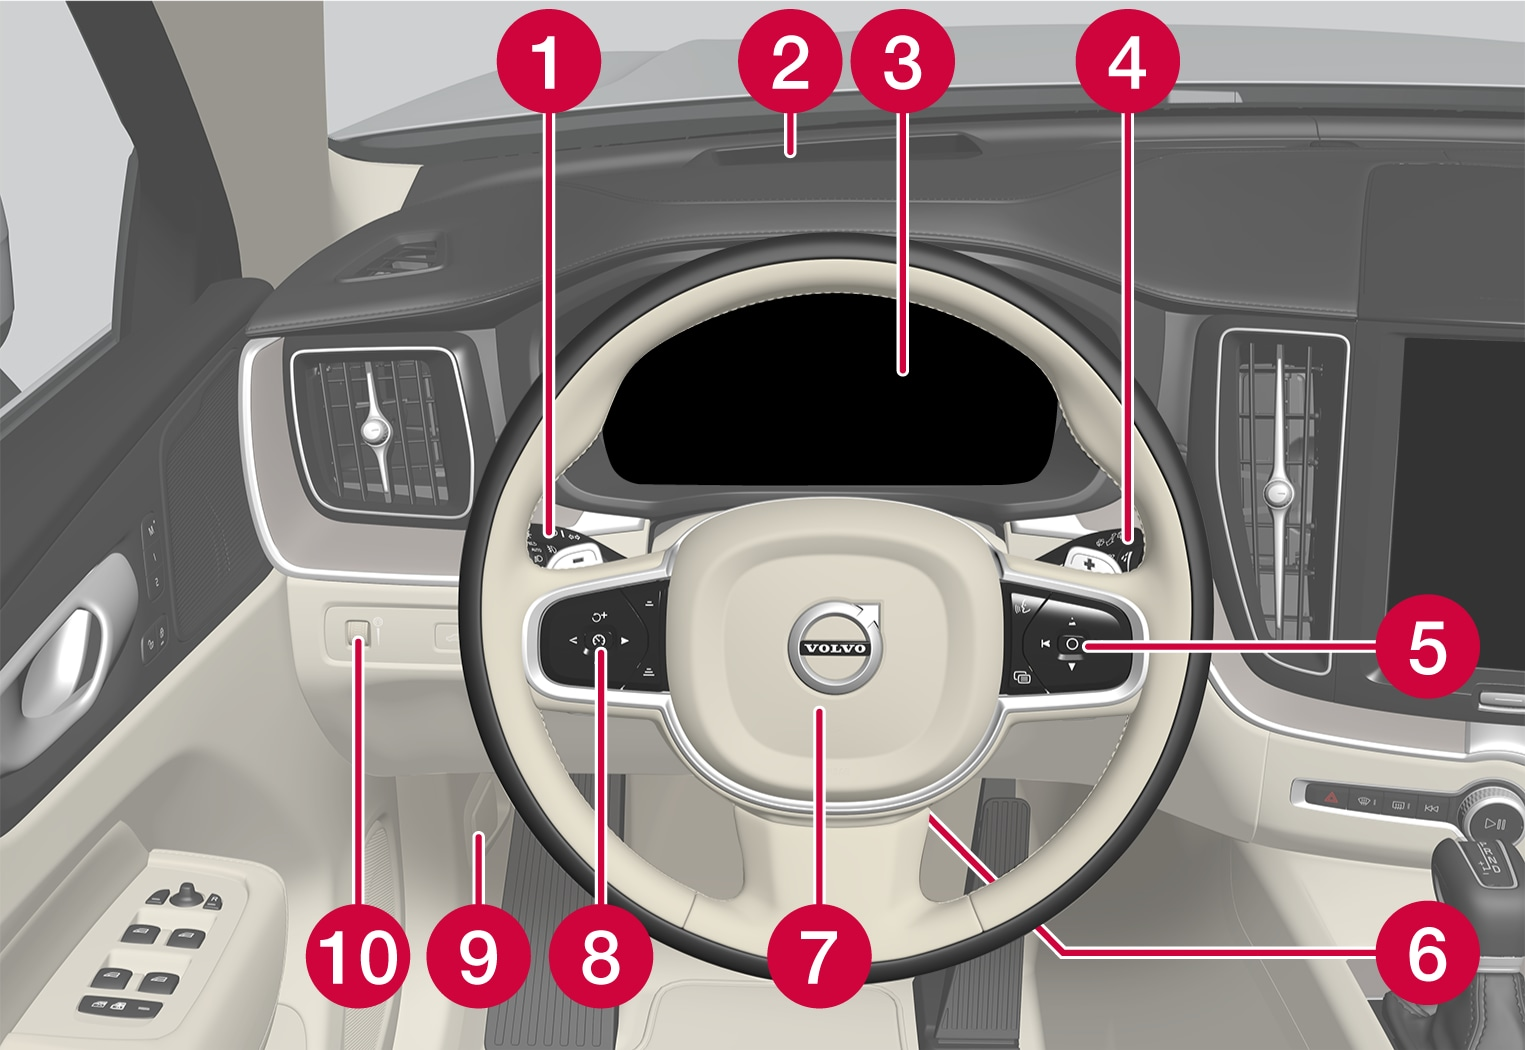 P5-S/V/XC60-21w22-Displays and controls, left hand drive